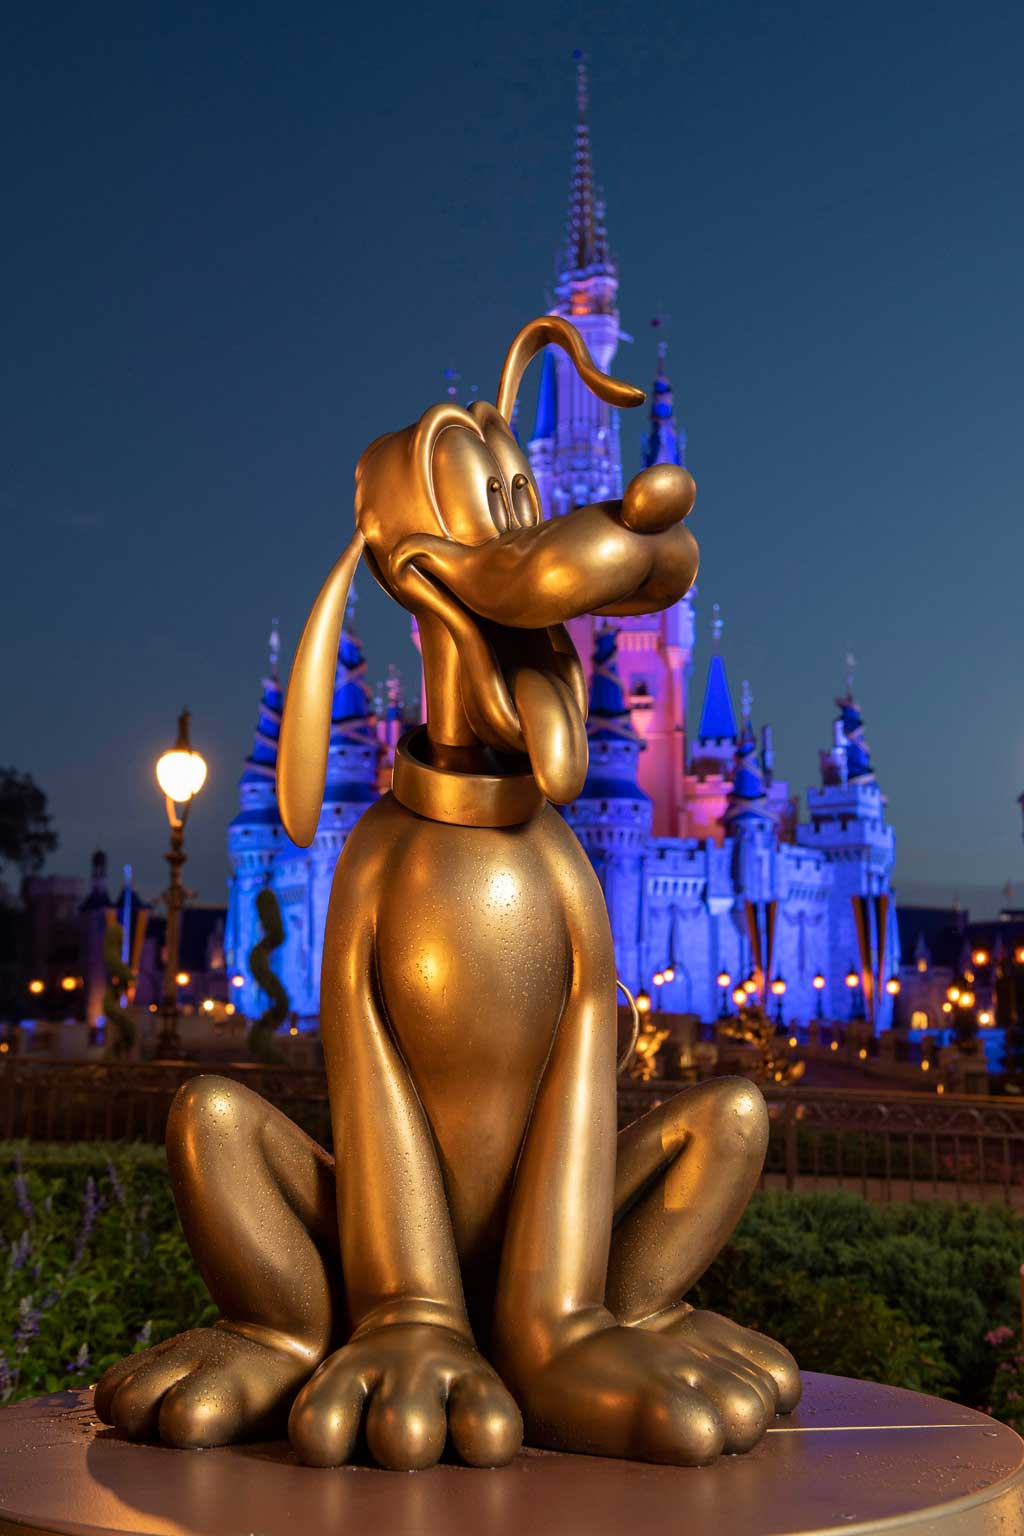 """Pluto at Magic Kingdom Park is one of the """"Disney Fab 50"""" golden character sculptures appearing in all four Walt Disney World Resort theme parks in Lake Buena Vista, Fla., as part of """"The World's Most Magical Celebration,"""" beginning Oct. 1, 2021, in honor of the resort's 50th anniversary. (David Roark, photographer)"""